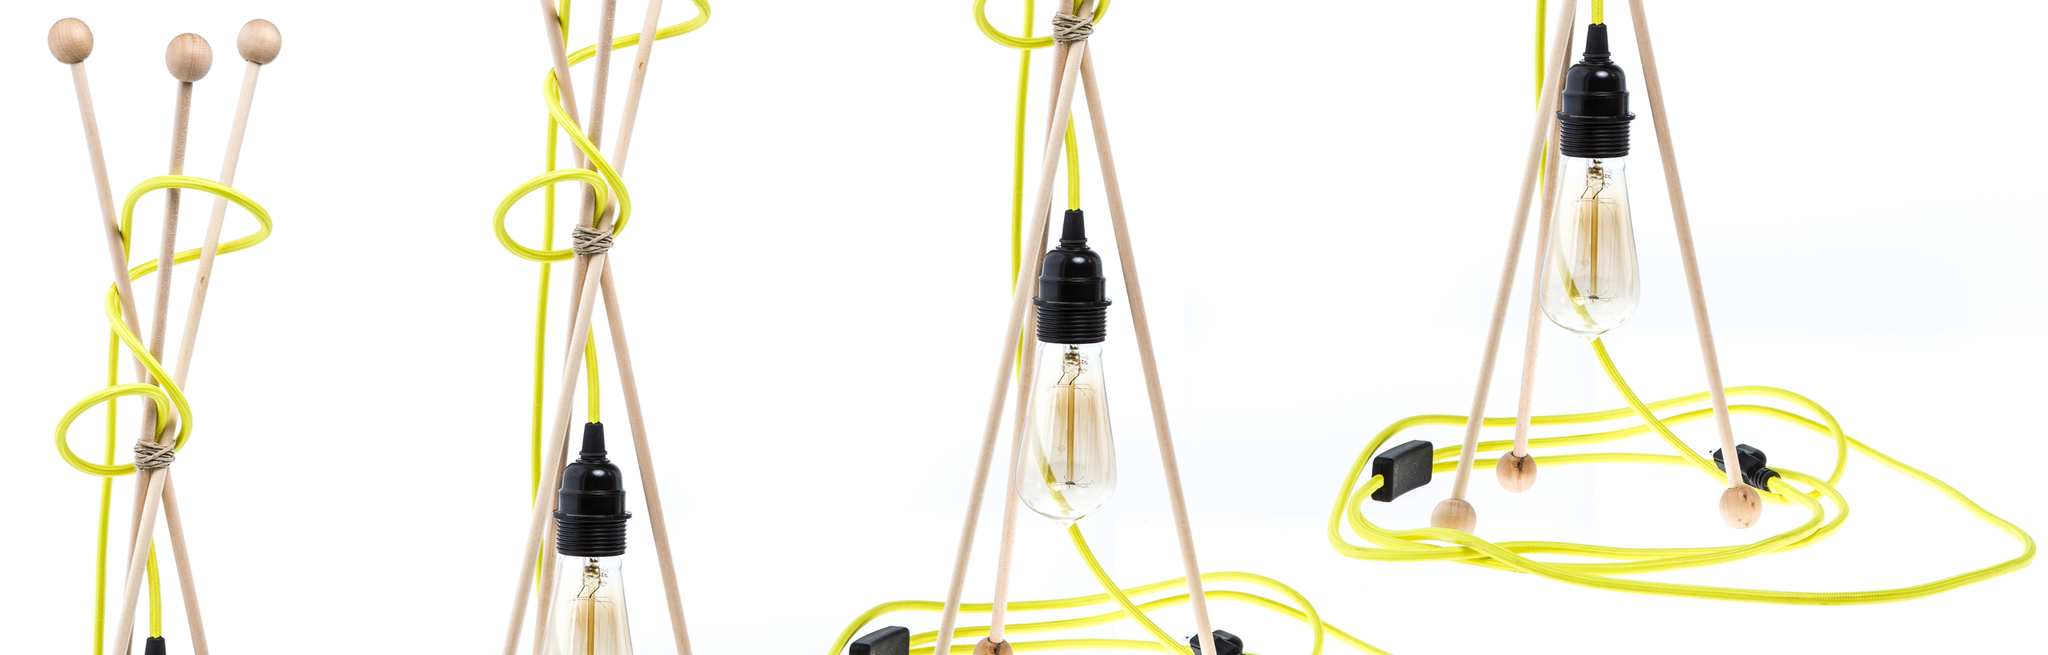 Diy Mod Color Cord Company Wiring A Light Fixture To Modern Lamp Using Pendant Set